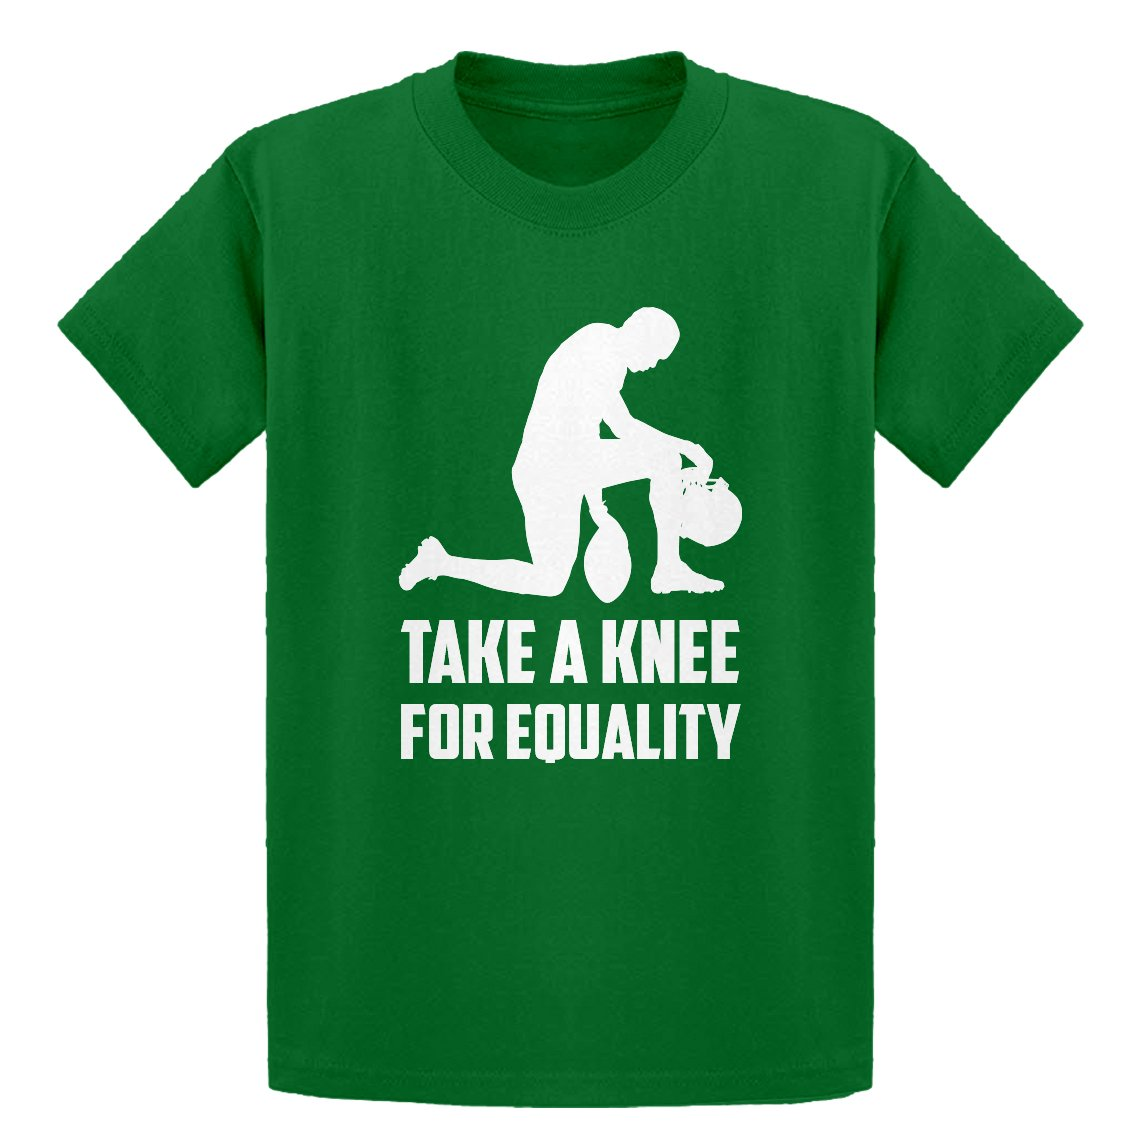 Indica Plateau Players Take the Knee for Equality Youth T-Shirt 3470-Y